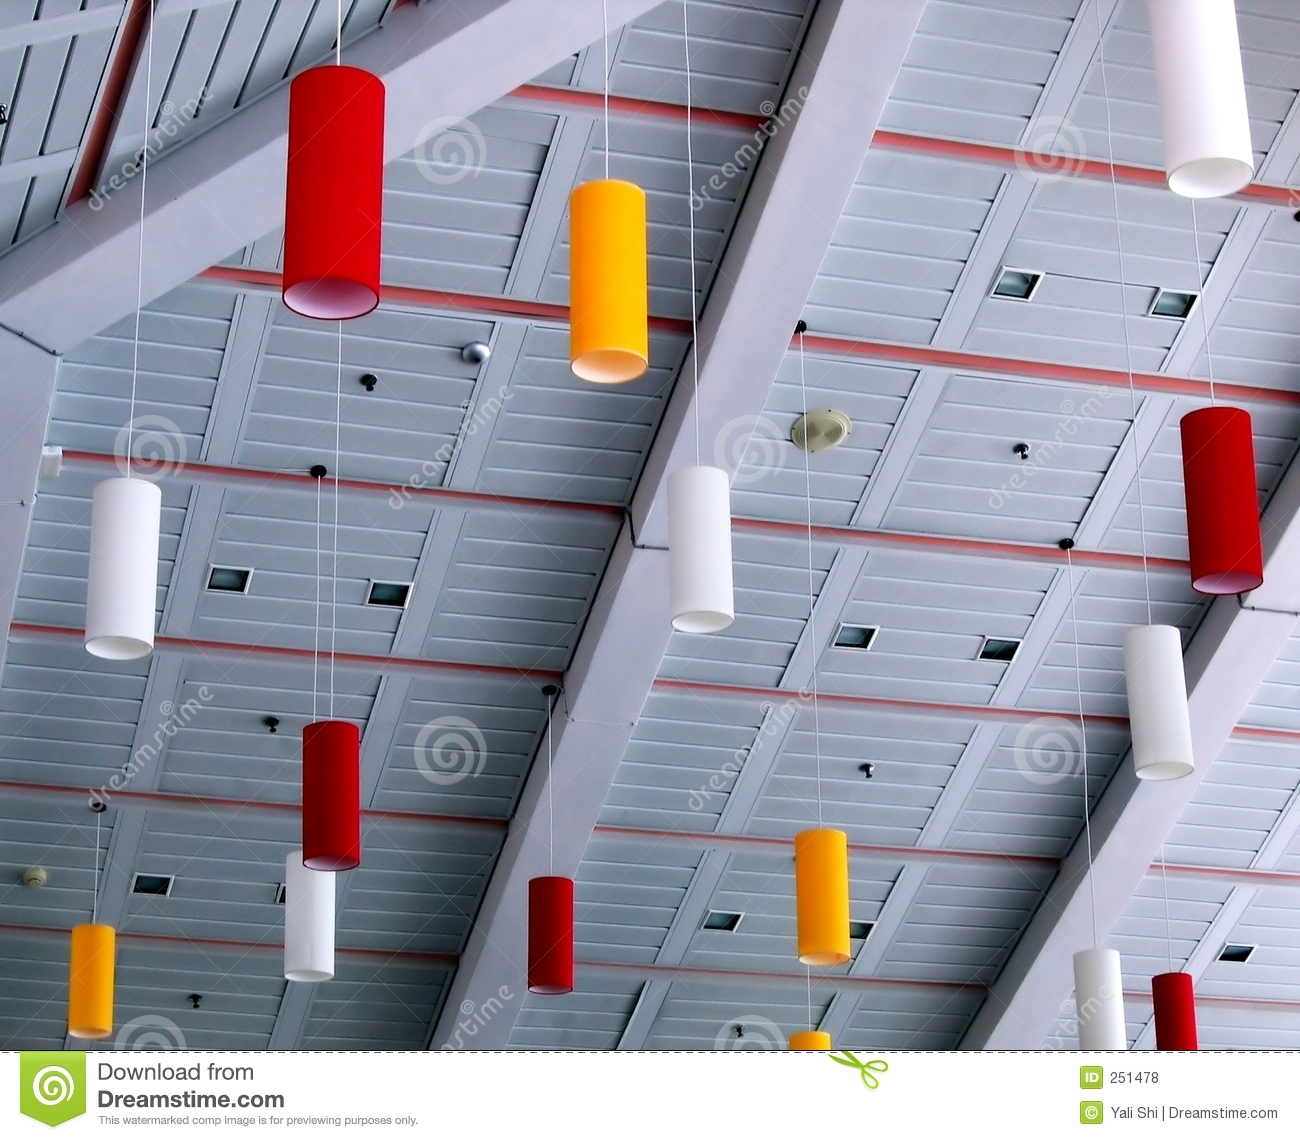 Public Facility Ceiling Design Royalty Free Stock Photos - Image ...